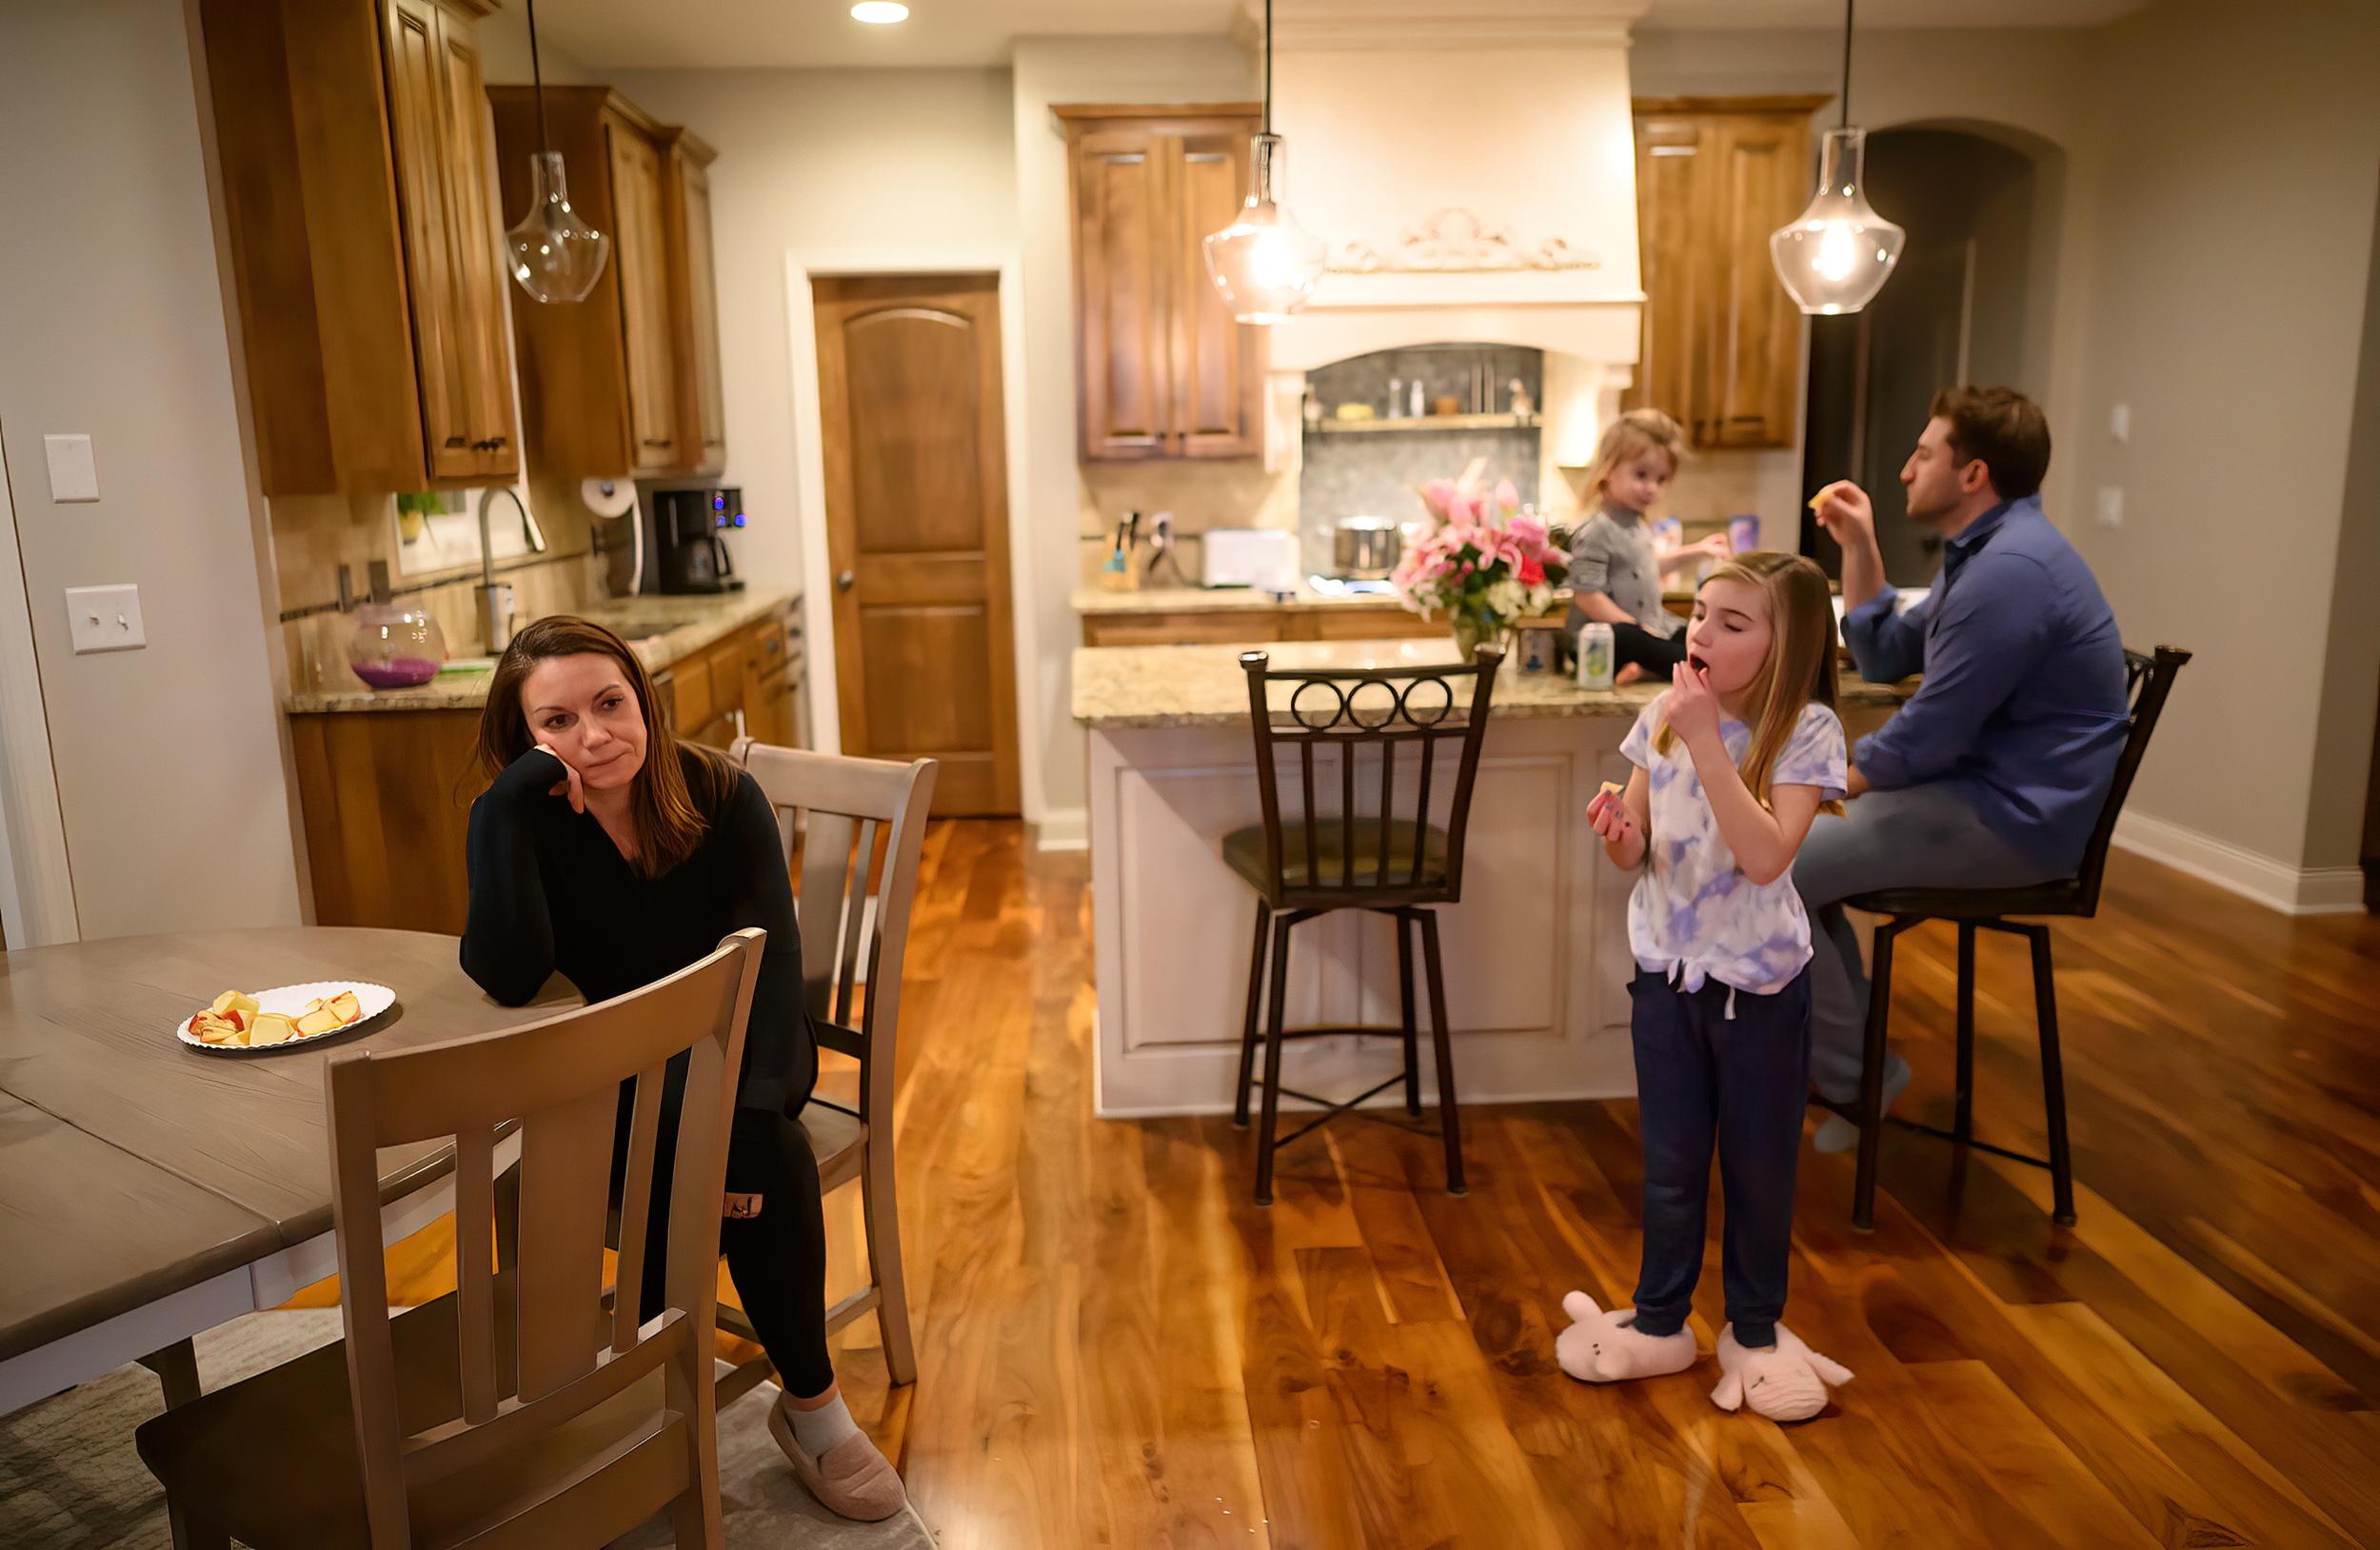 Holly Vilione looked on as her daughters Nora, 2, Mya, 8 and husband, Chris Vilione, snacked in the kitchen a few hours after Holly returned from another difficult day working in the ICU.